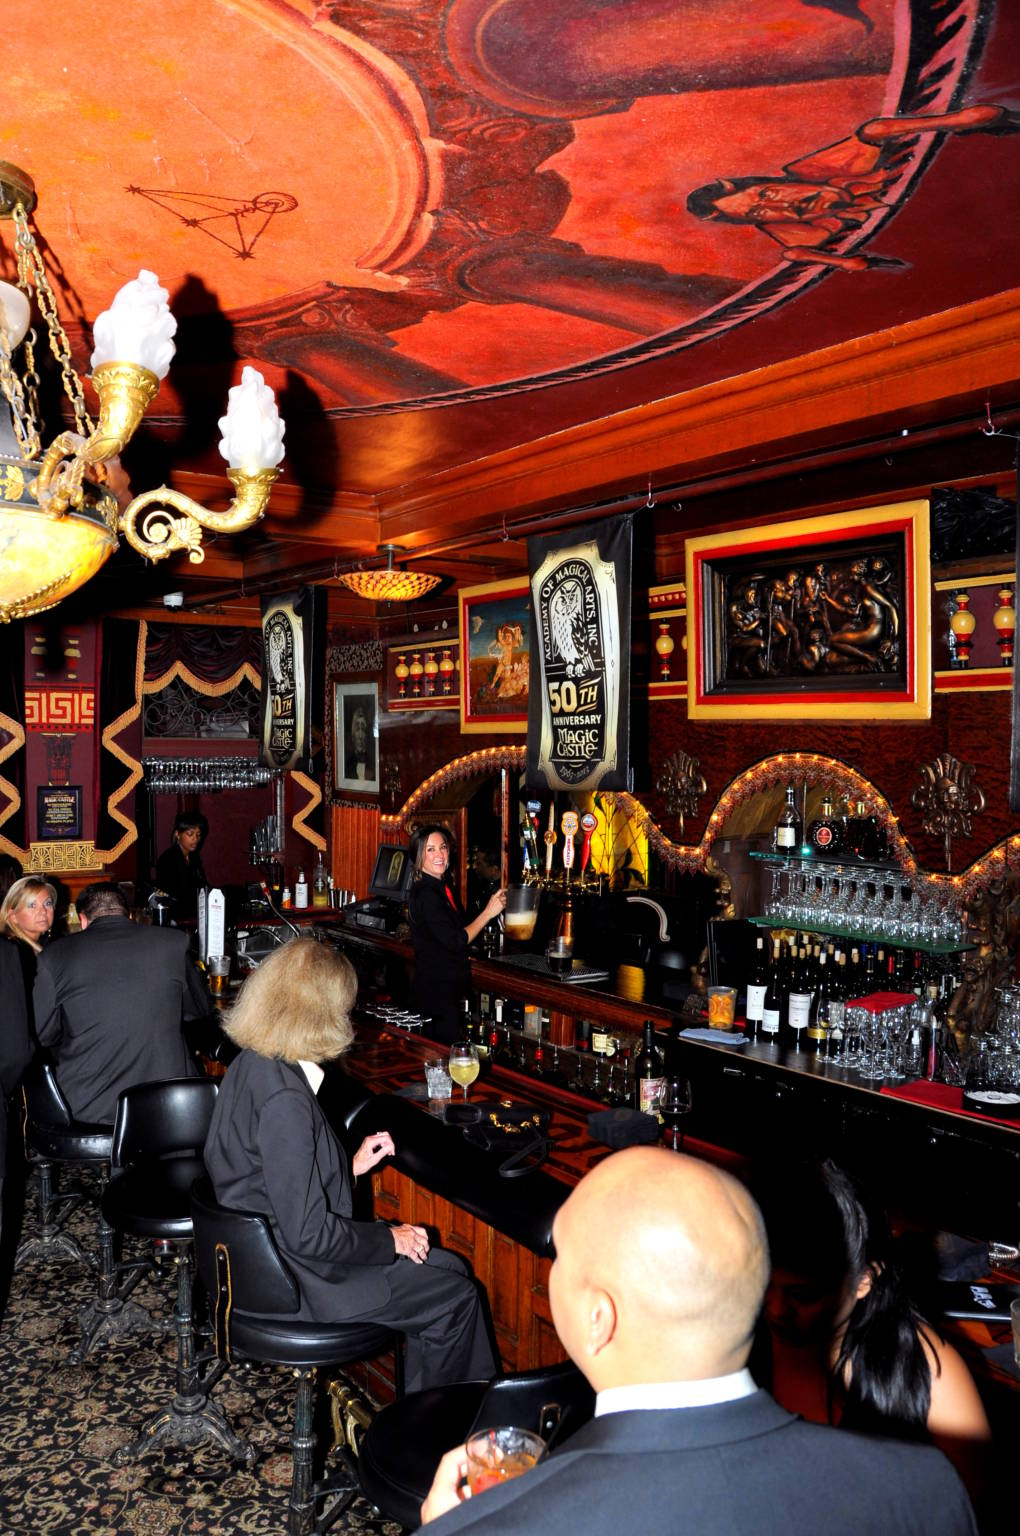 The Grand Salon Bar